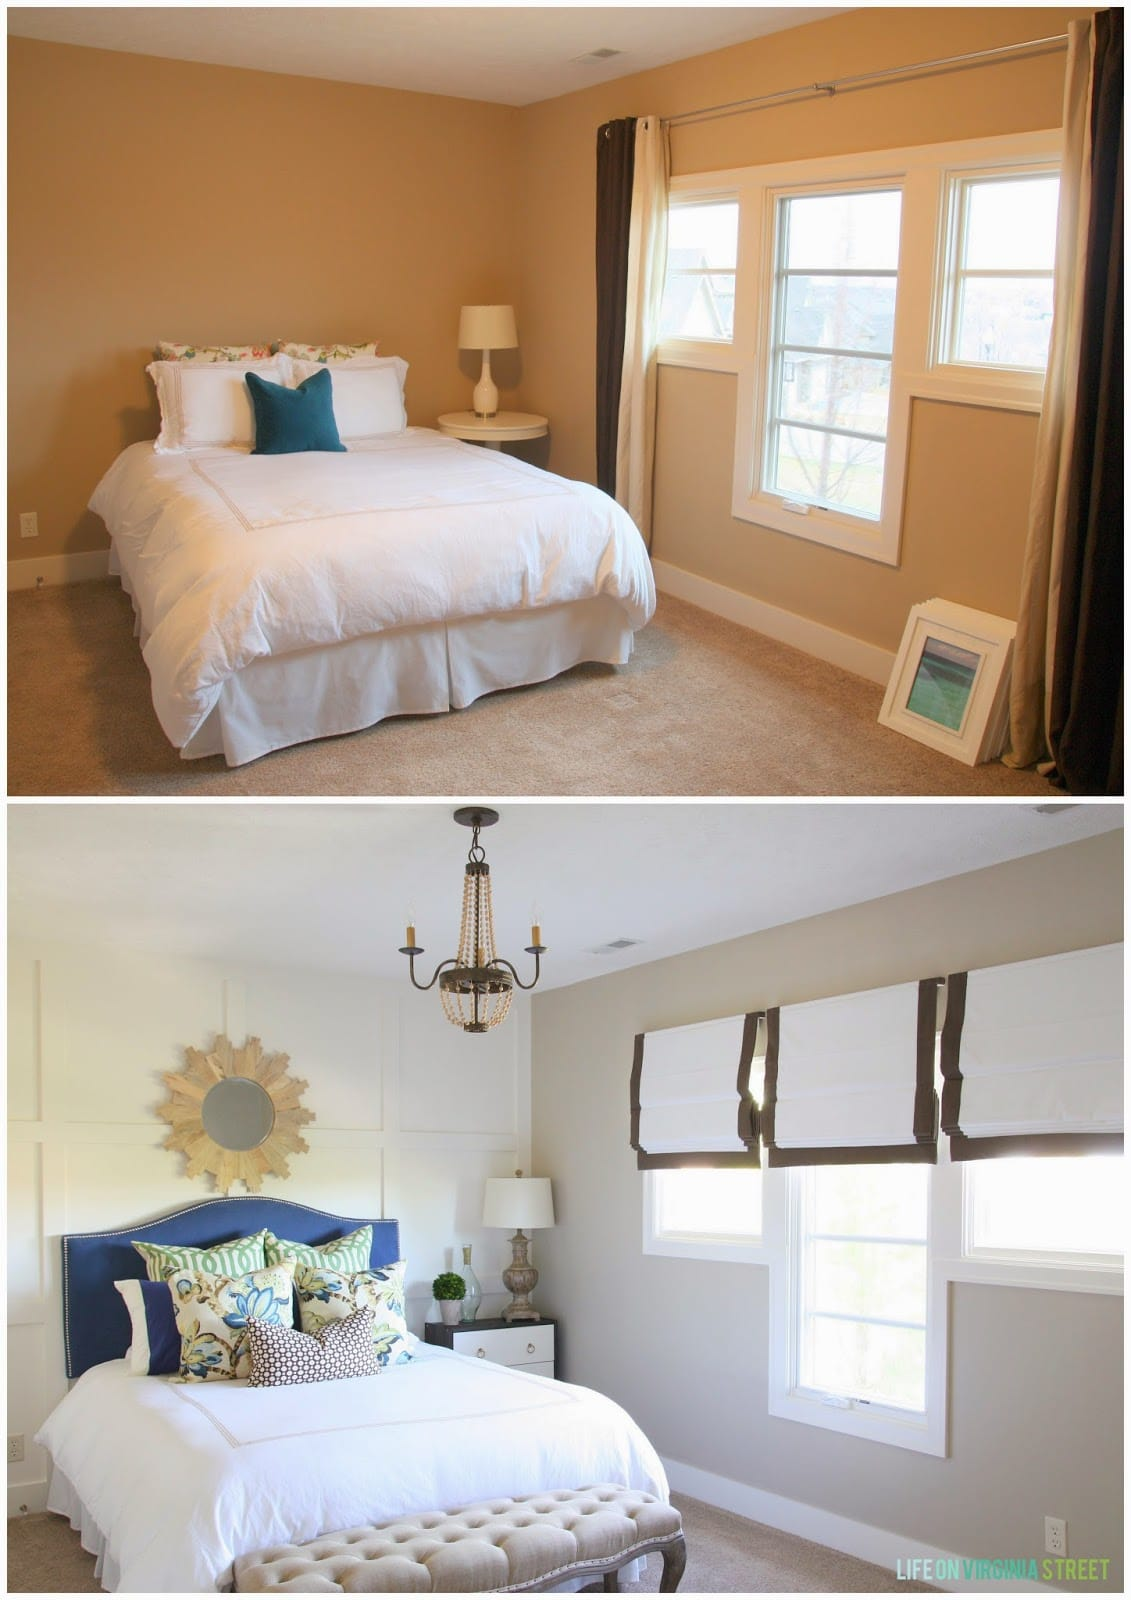 Guest bedroom makeover before and after shots.